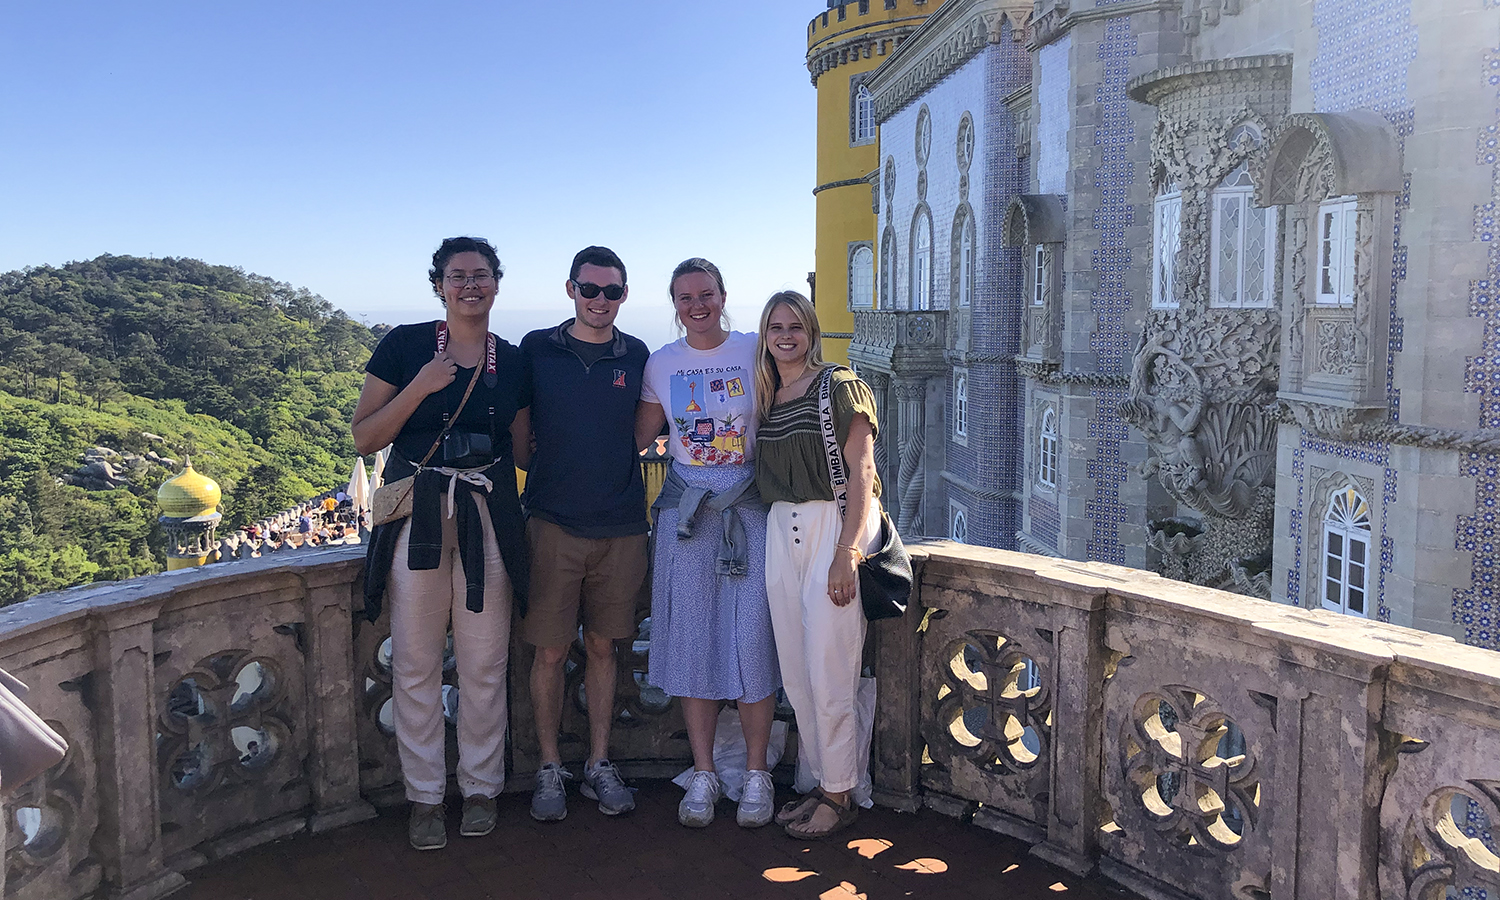 Elizabeth Fajardo '20, Josh Wasserman '20, Madeline Fitzwilliam '20 and Ally Bryan '20 visit the Park and National Palace of Pena in Sintra, Portugal, while studying abroad in Germany, Denmark, Italy and Spain, respectively.